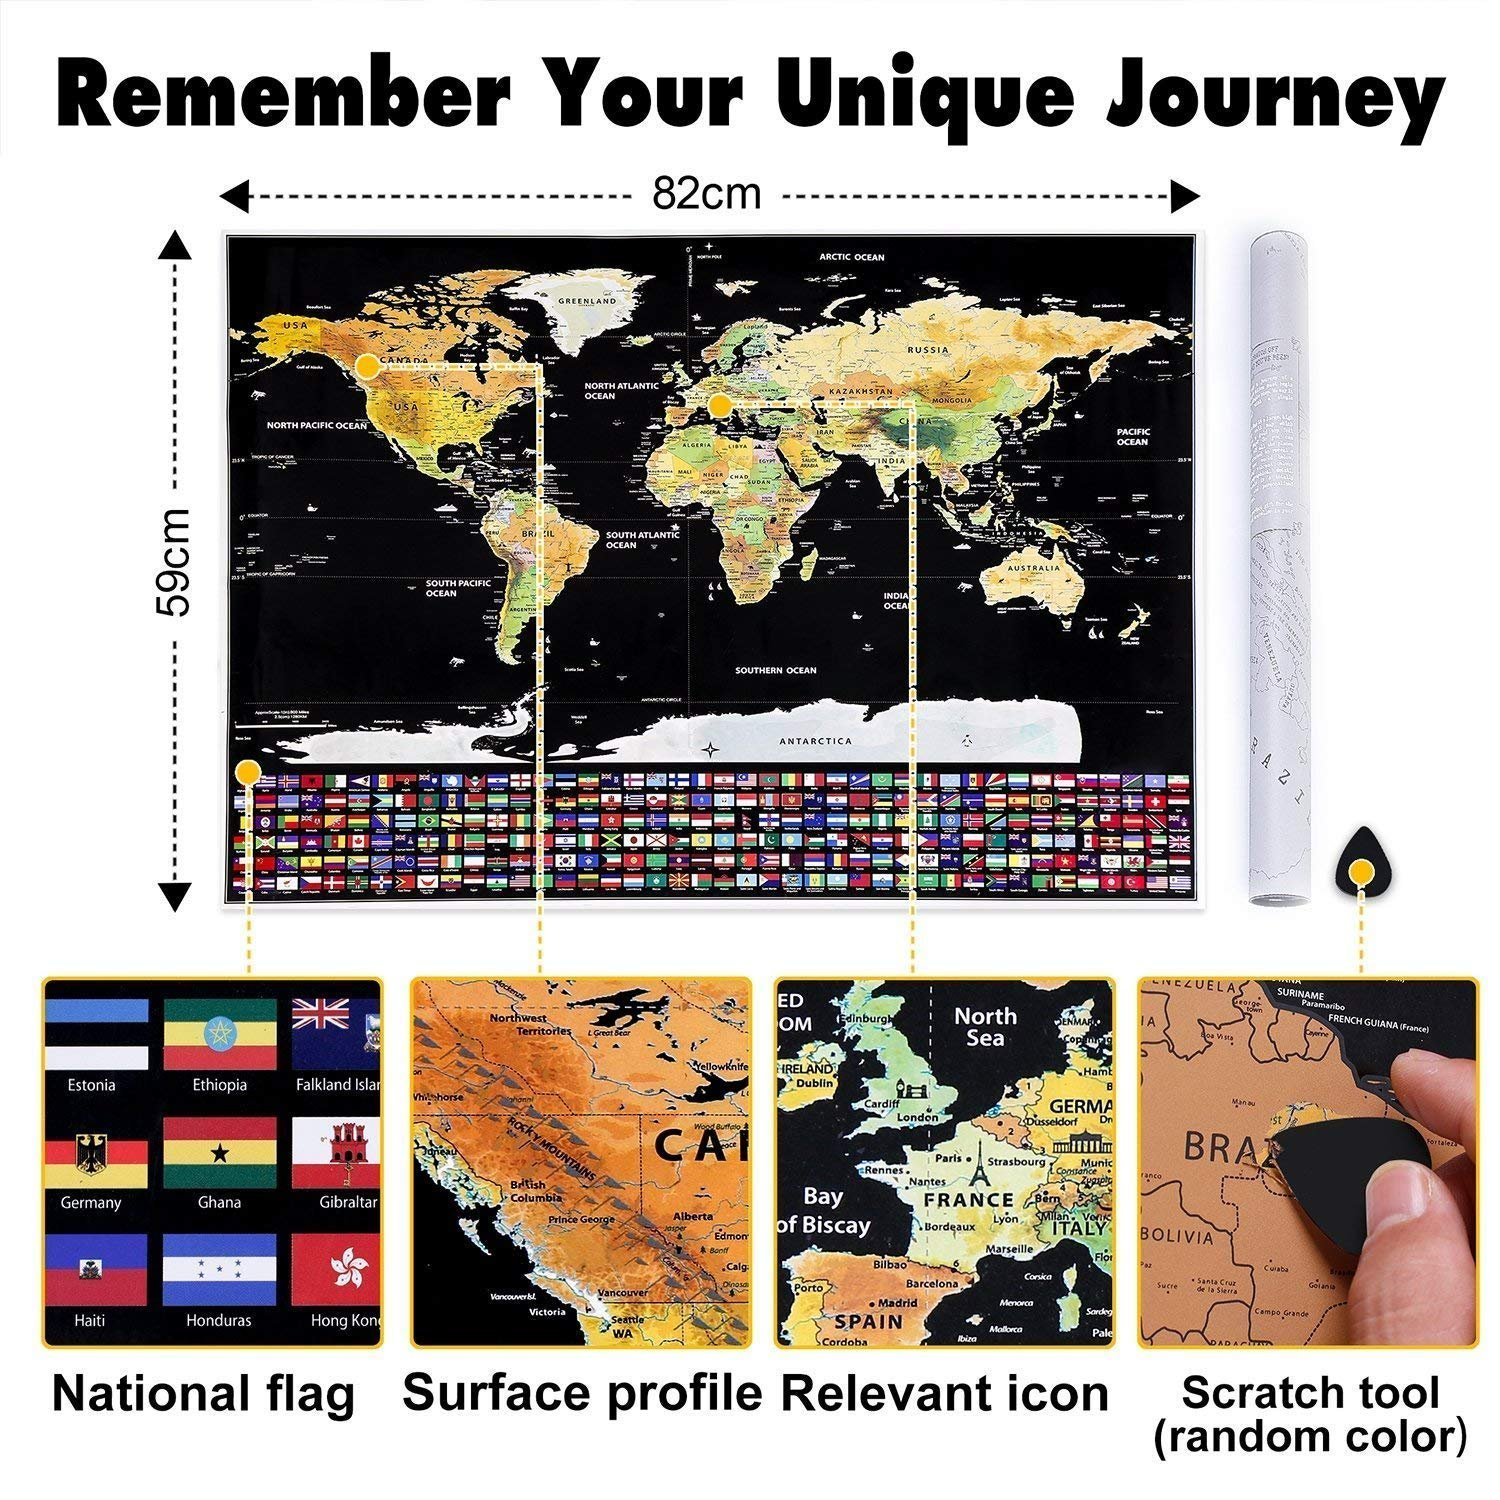 Scratch Off World Map Poster Travel Tracker Journal Log Giant Map Of The World With Country Flags Gift Wall Decor CERCHIO map-001